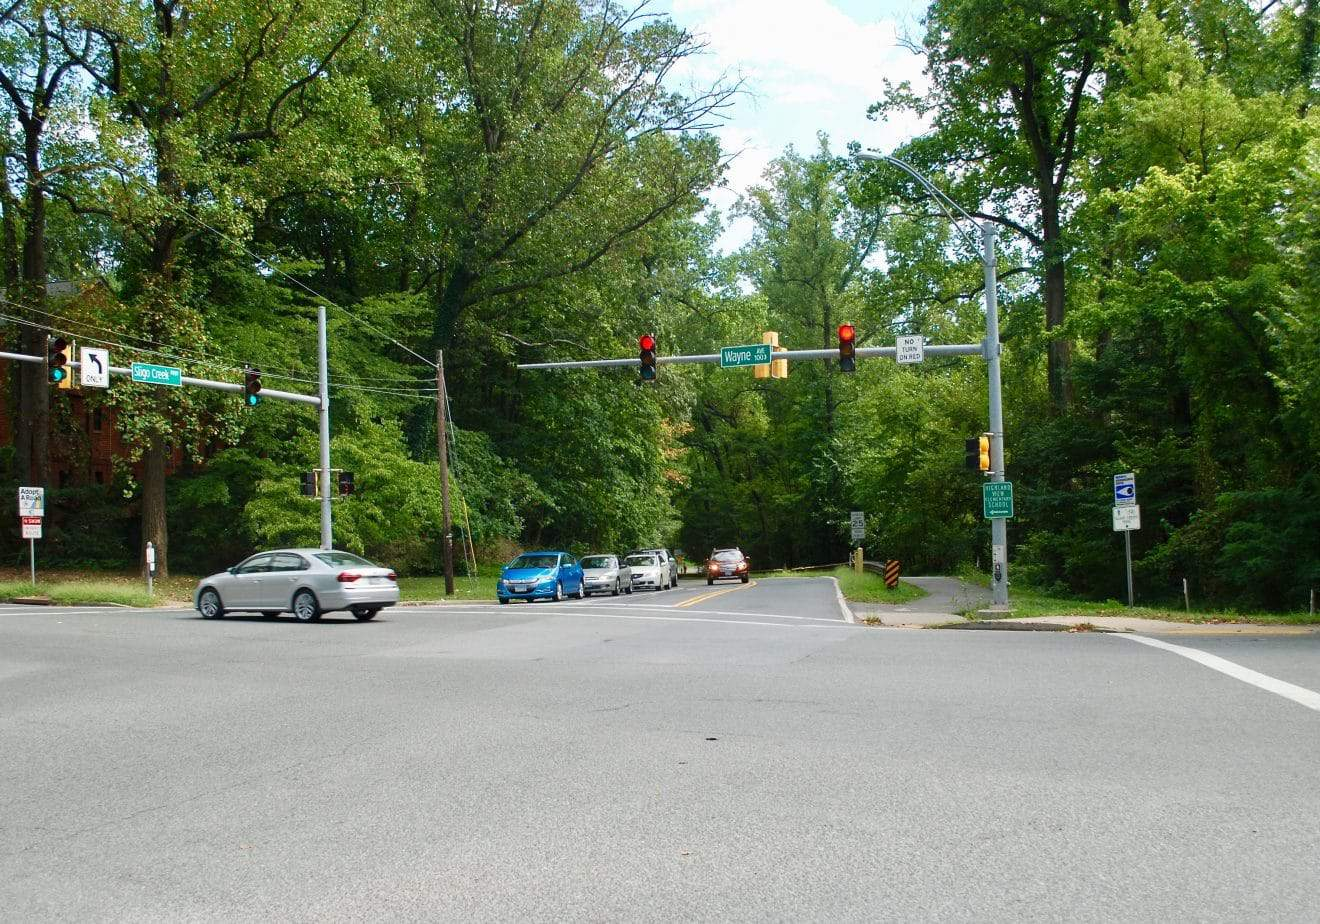 Sections of Sligo Creek Parkway to be Closed Friday for Repairs - Montgomery Parks will close two sections of Sligo Creek Parkway tomorrow, Sept. 18 to vehicles, bicyclists and pedestrians from 8 a.m.–2 p.m. The sections are: